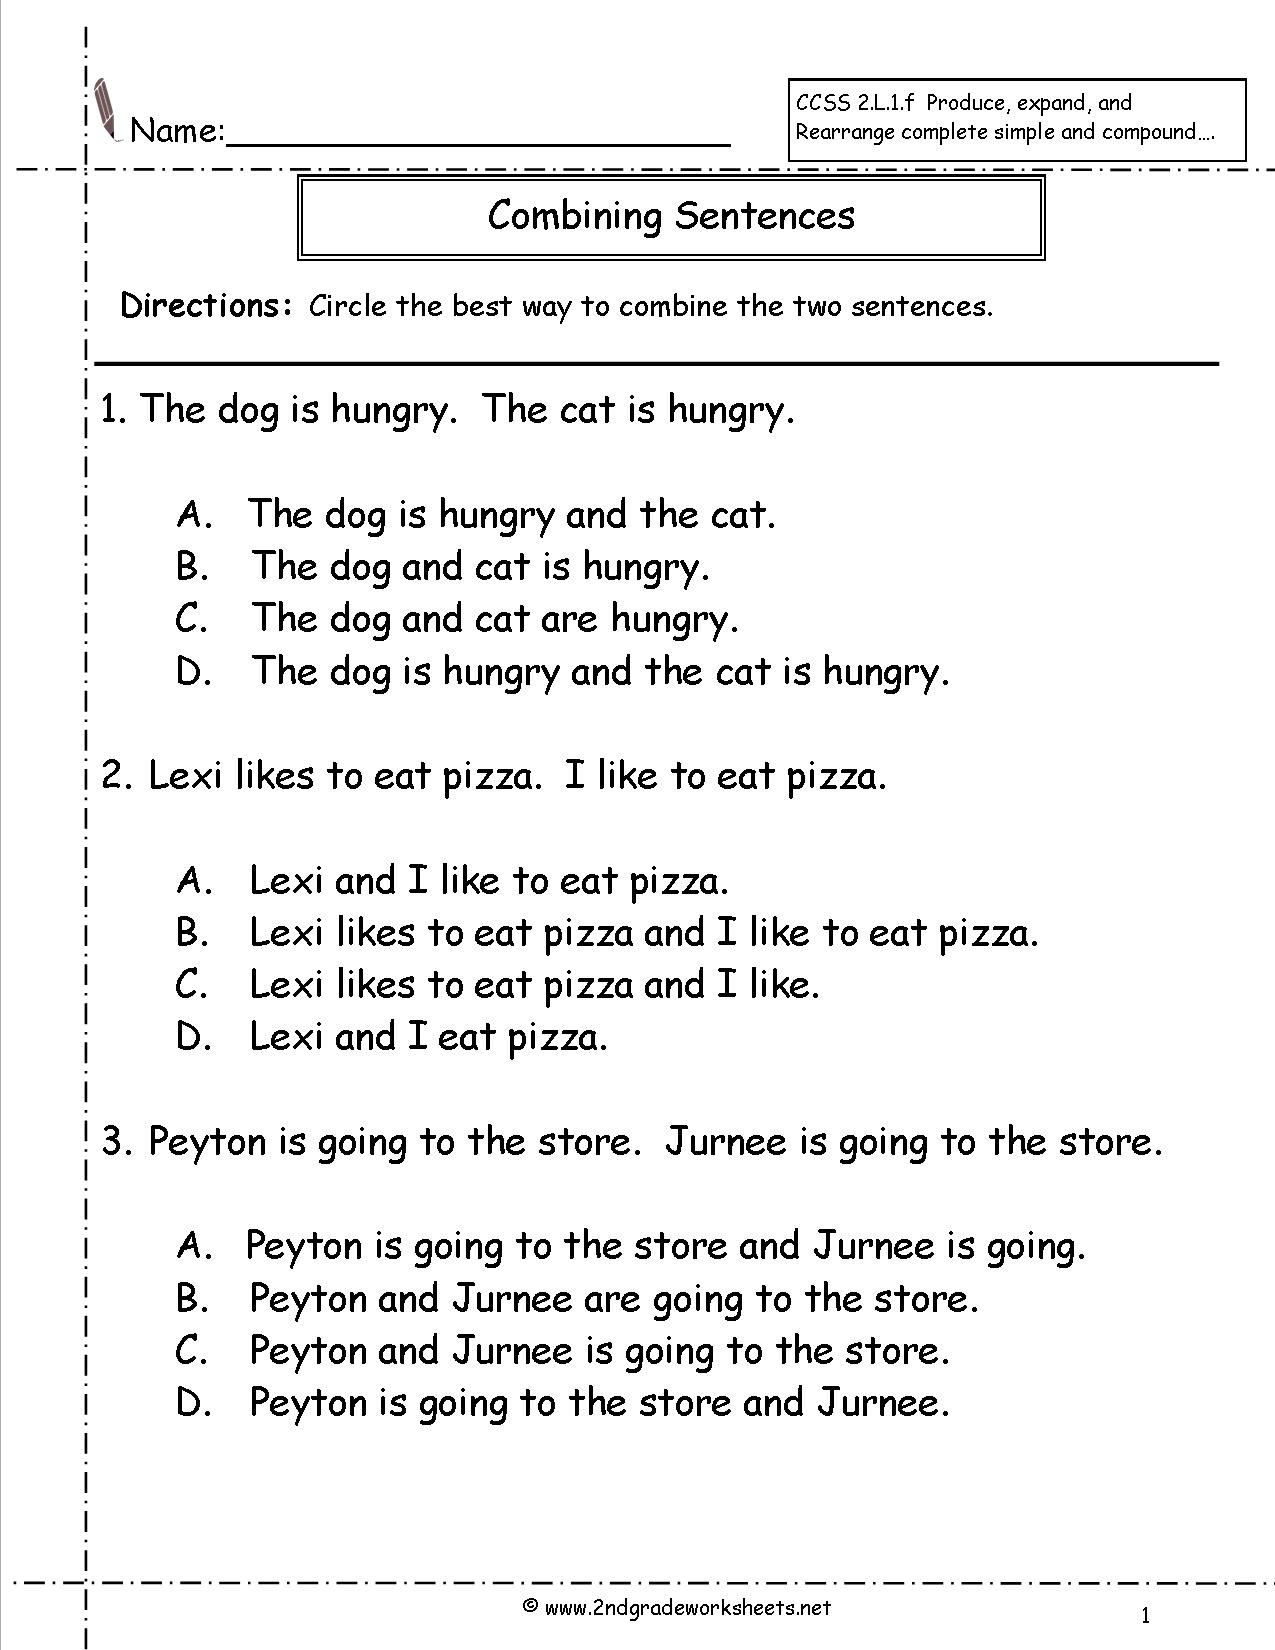 Topic Sentence Worksheets 4th Grade Second Grade Sentences Worksheets Ccss 2 L 1 F Worksheets